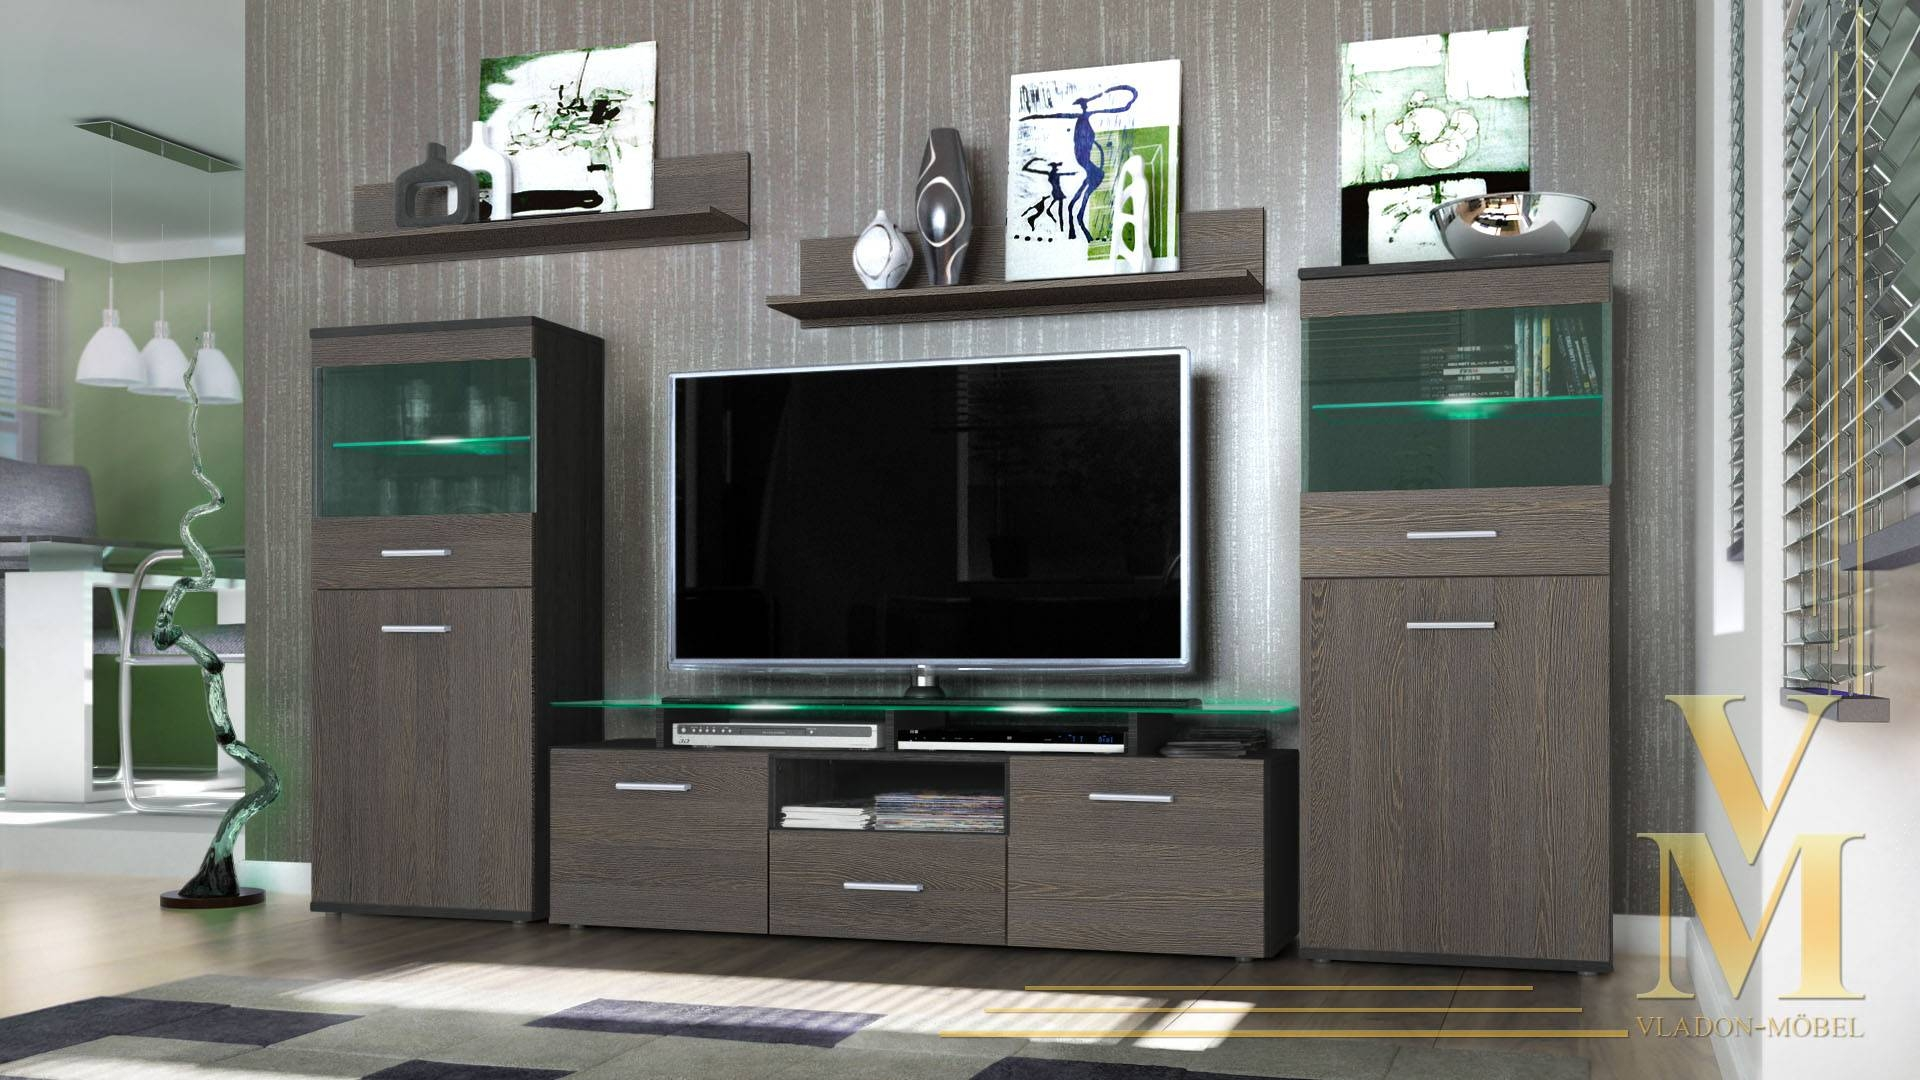 Trendy Tv Units For The Stylish Modern Home ~ Crowdbuild For (View 4 of 15)